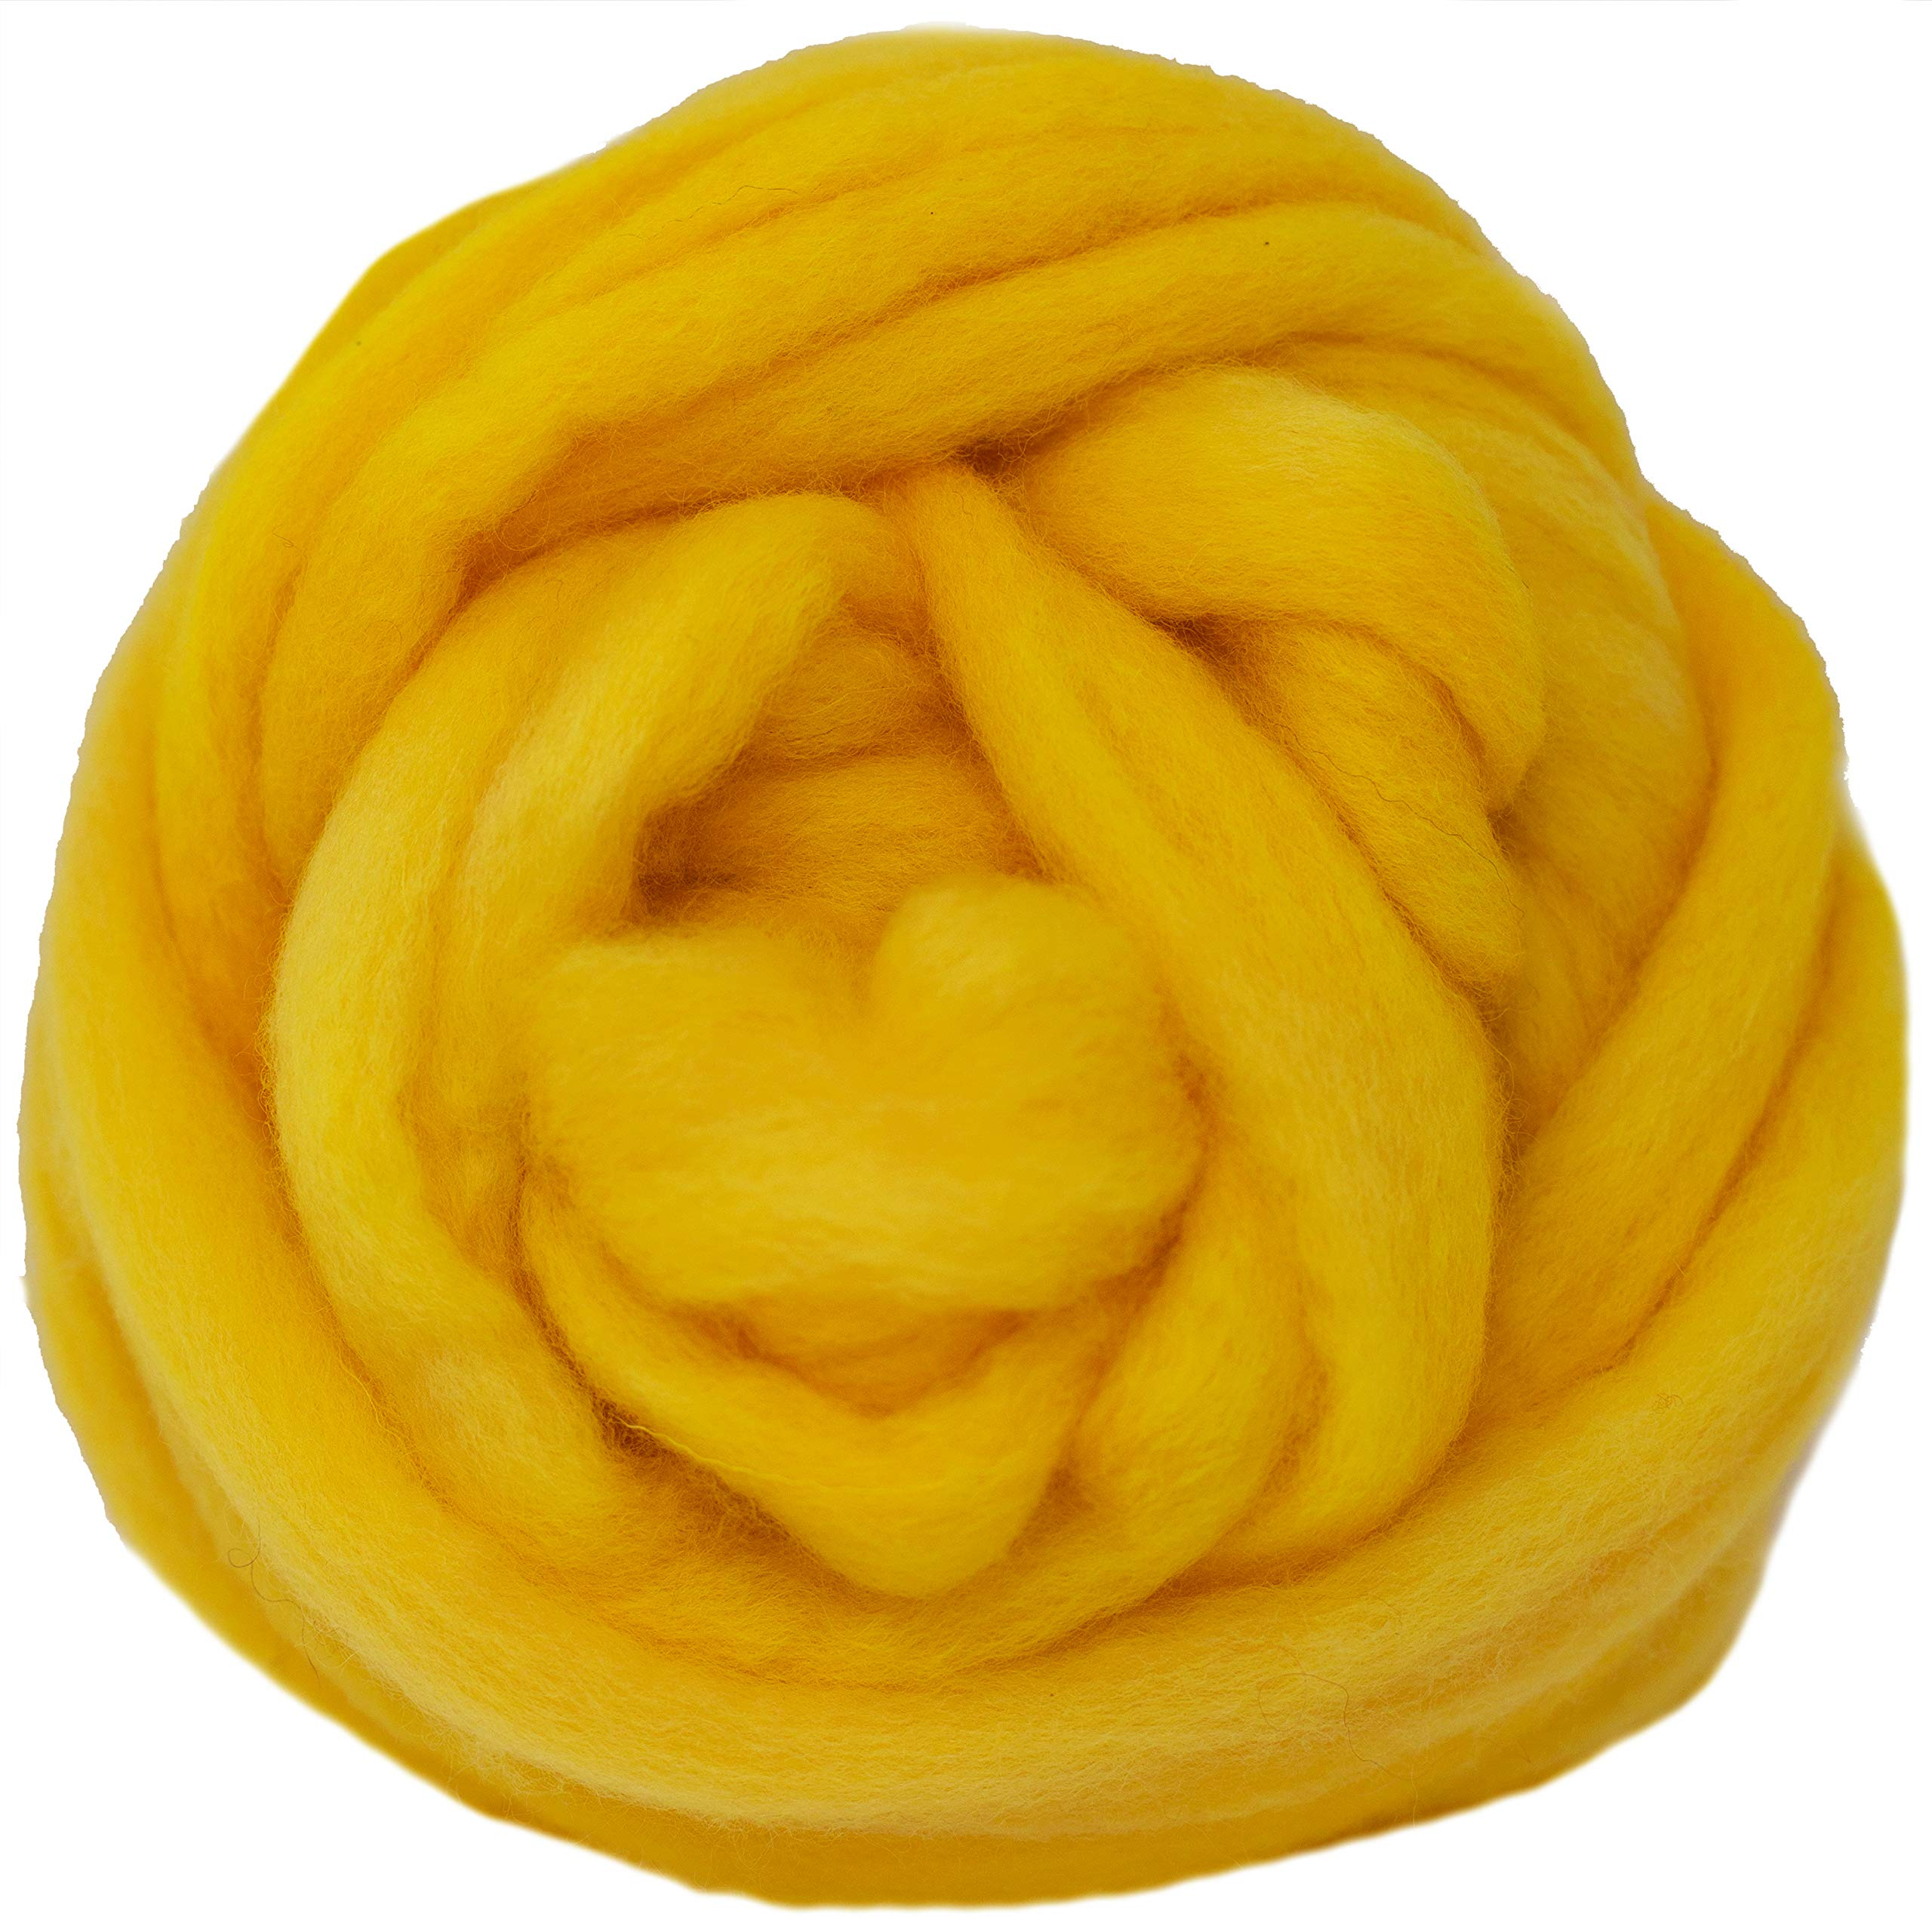 Wool Roving Hand Dyed. Super Soft BFL Combed Top Pre-Drafted for Easy Hand Spinning. Artisanal Craft Fiber ideal for Felting, Weaving, Wall Hangings and Embellishments. 4 Ounce. Yellow